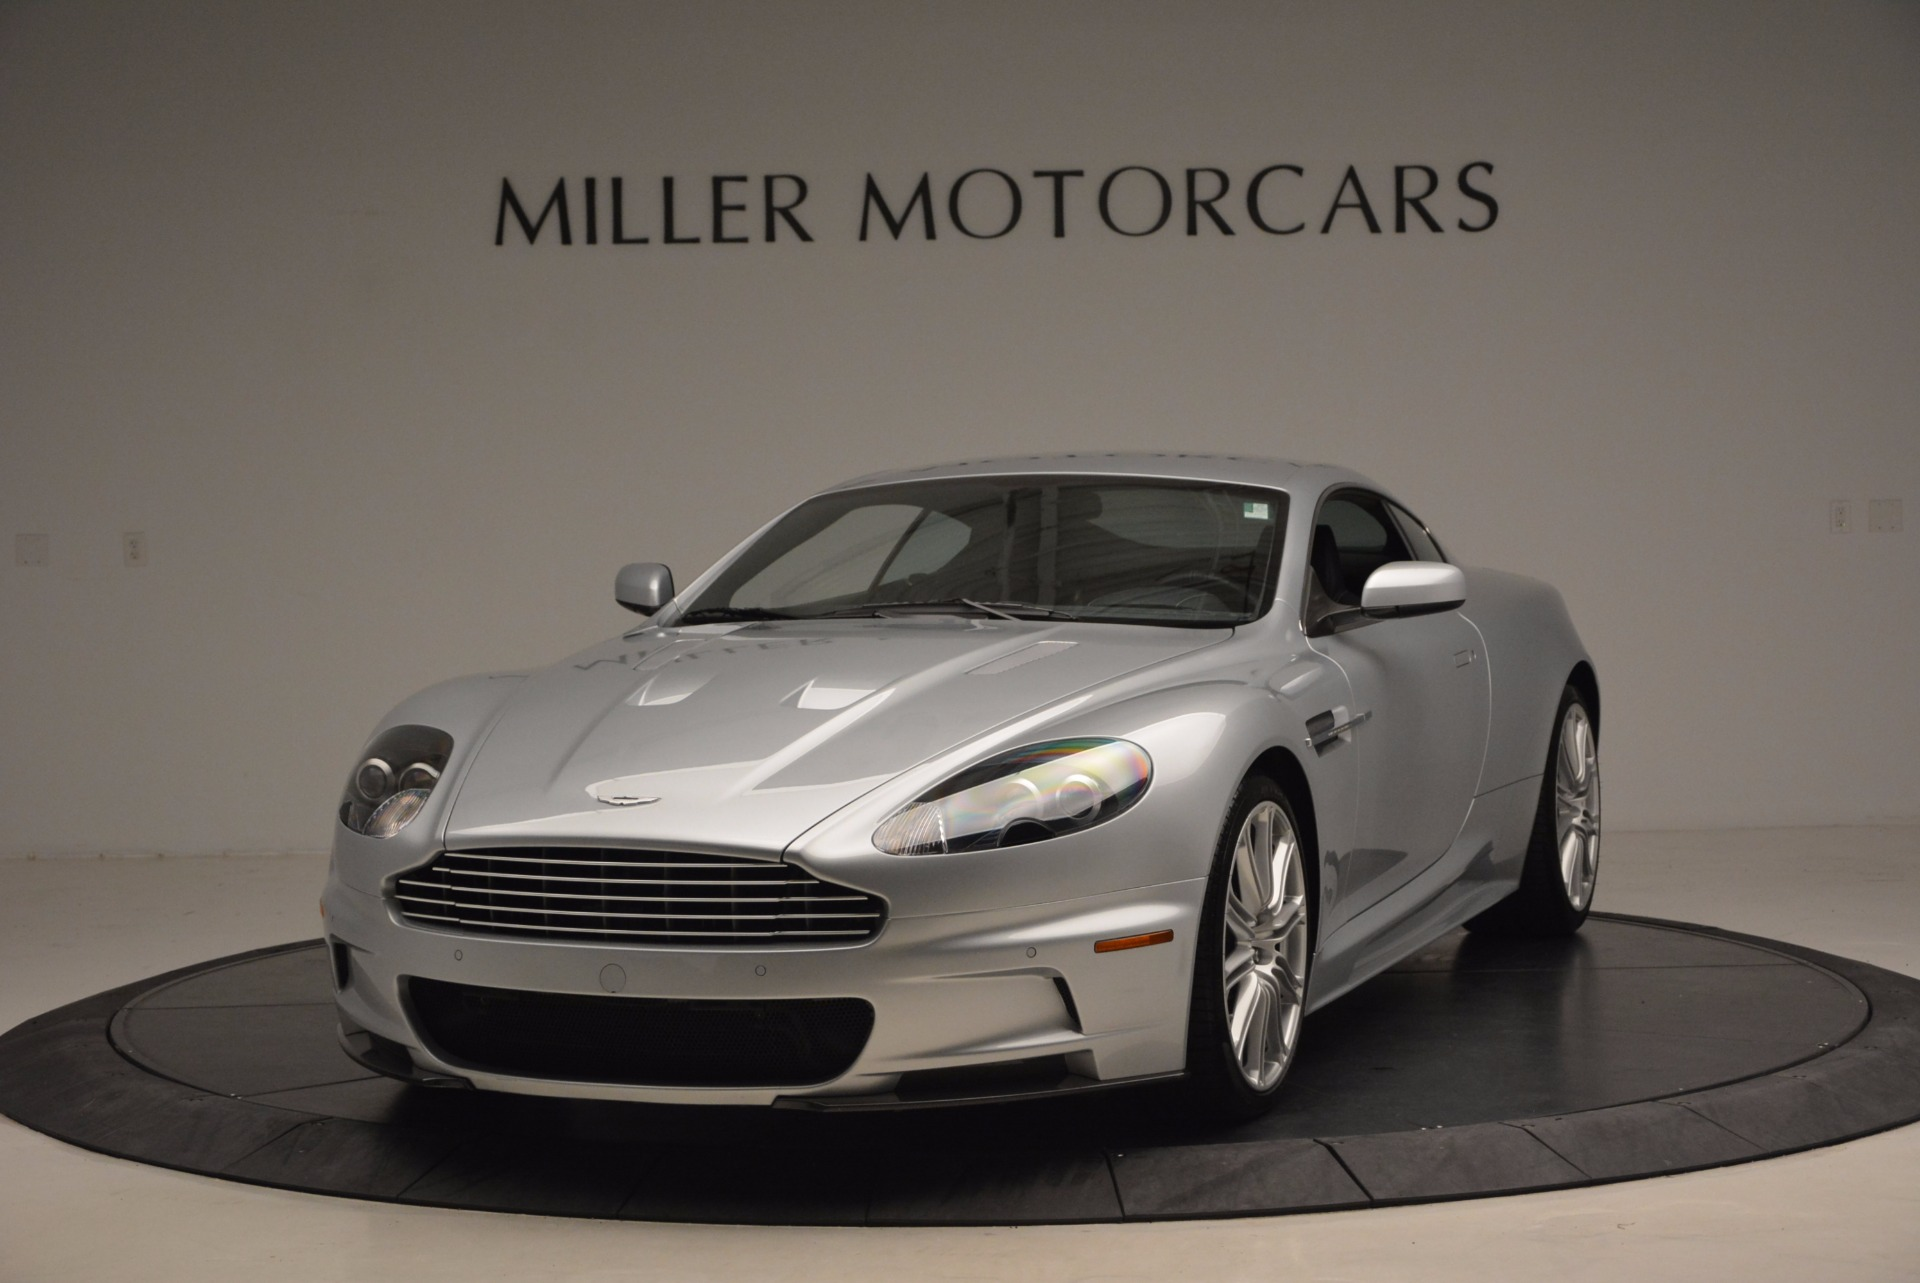 Used 2009 Aston Martin DBS for sale Sold at McLaren Greenwich in Greenwich CT 06830 1